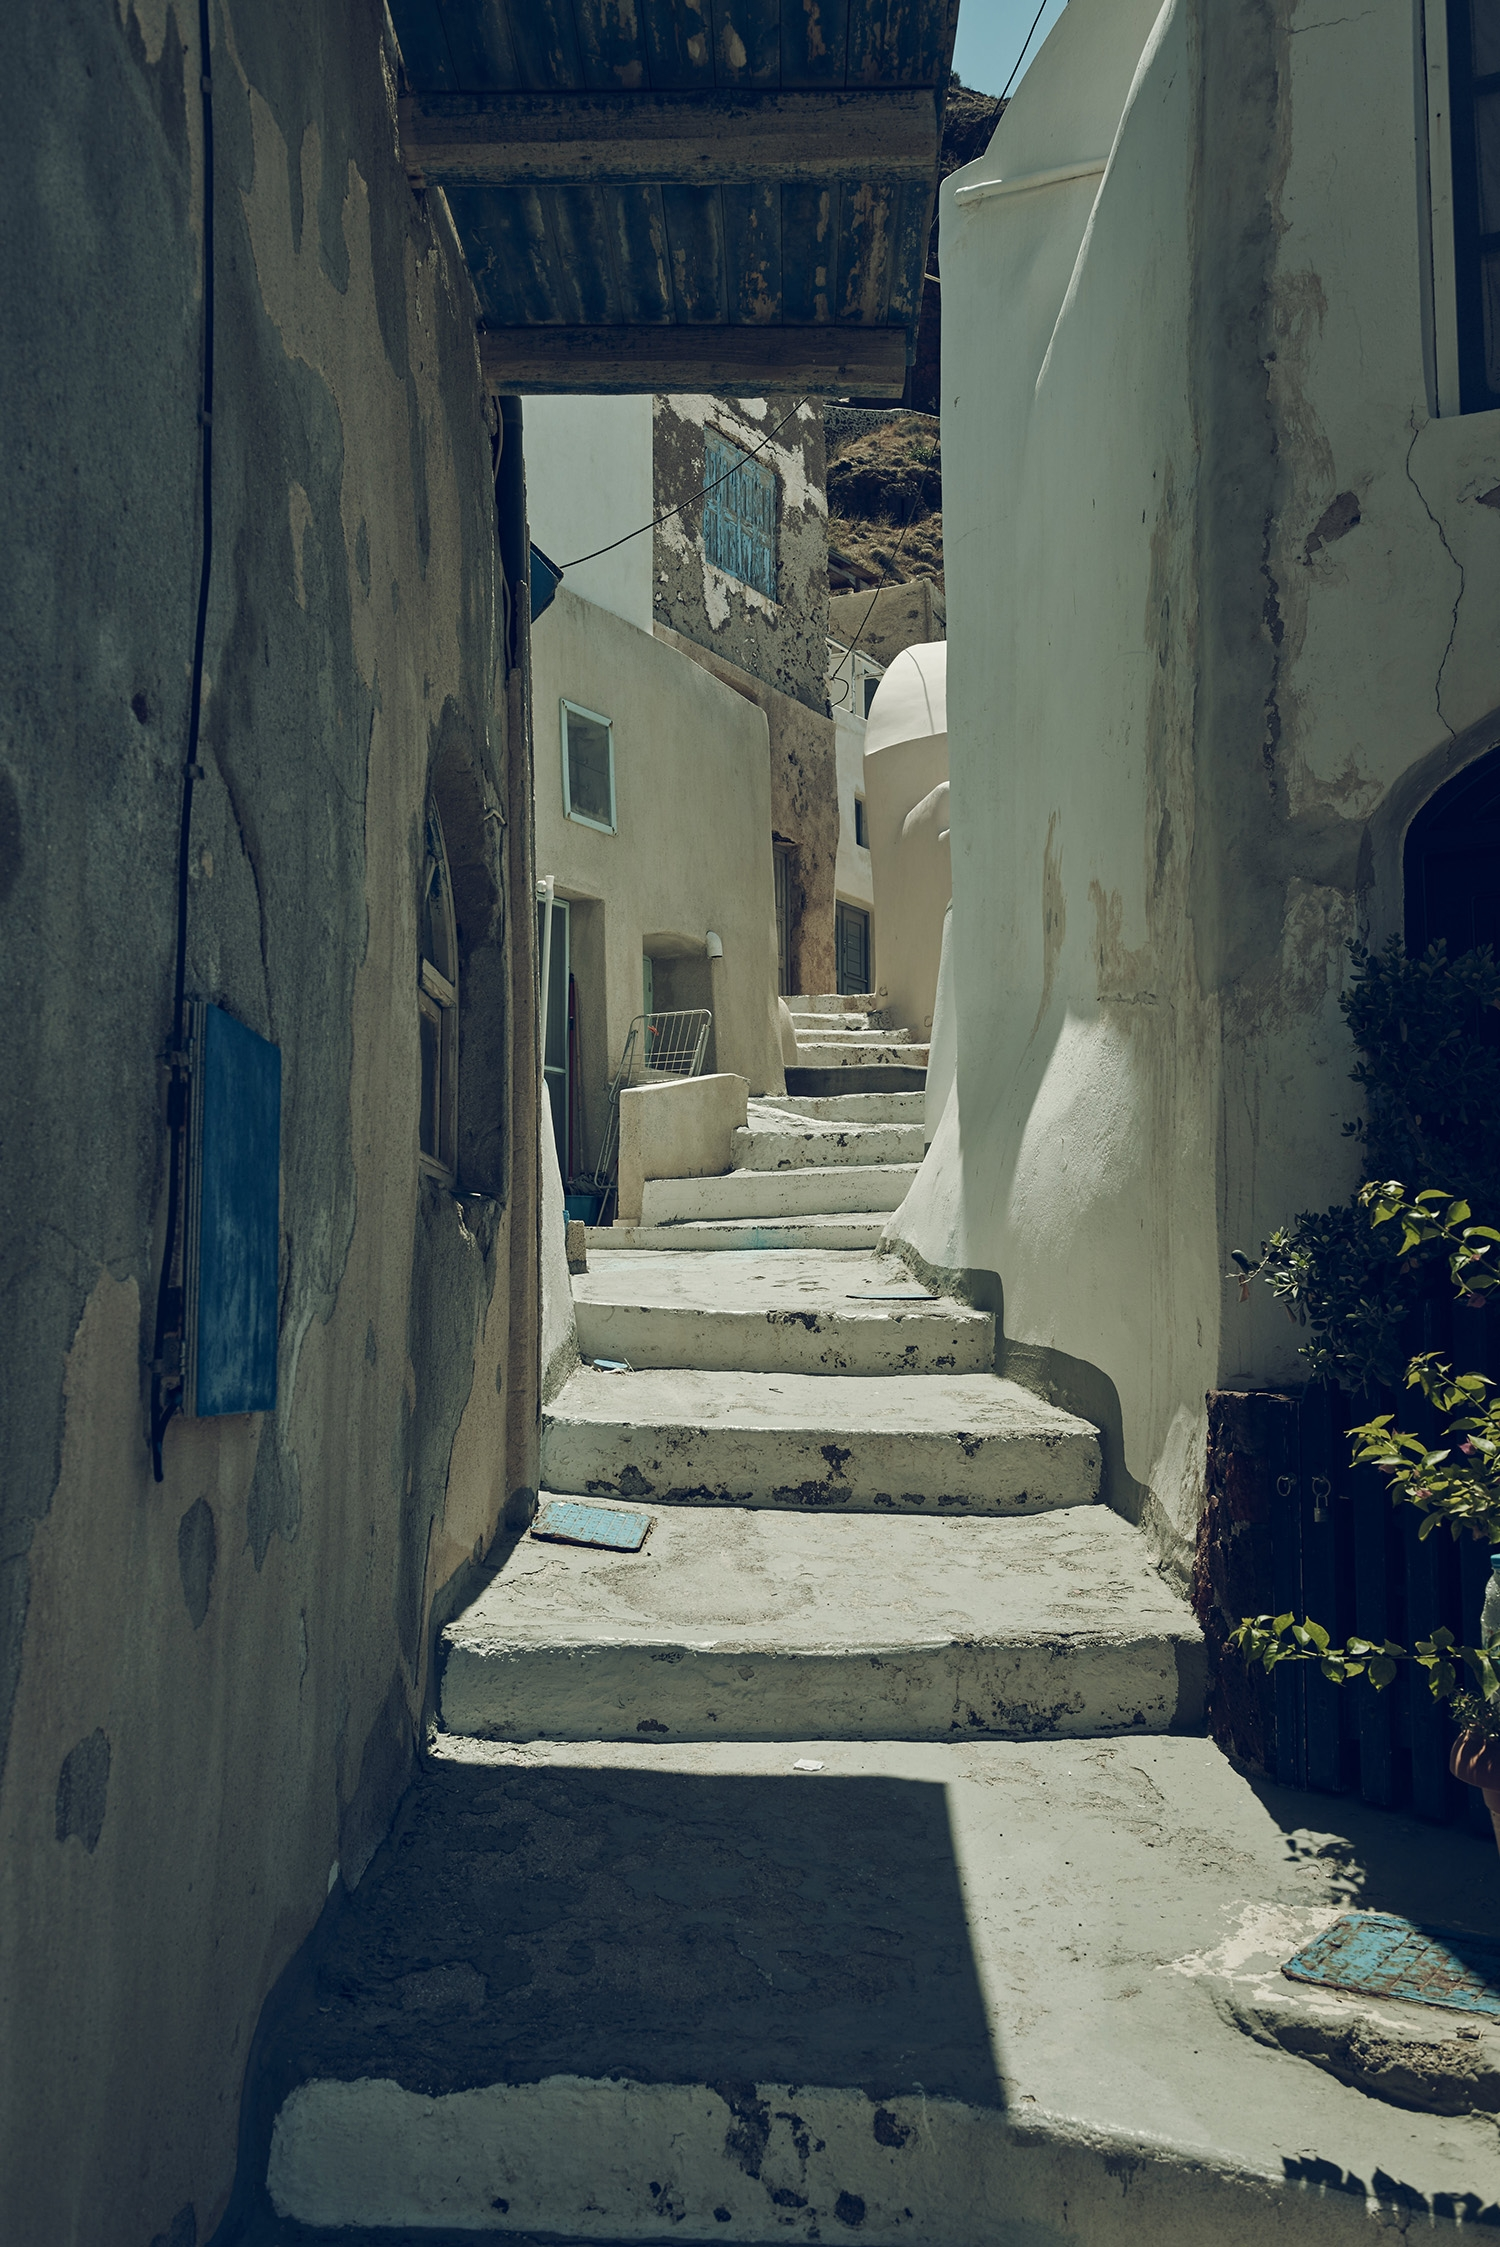 A little laneway with a stone staircase leading up the hill